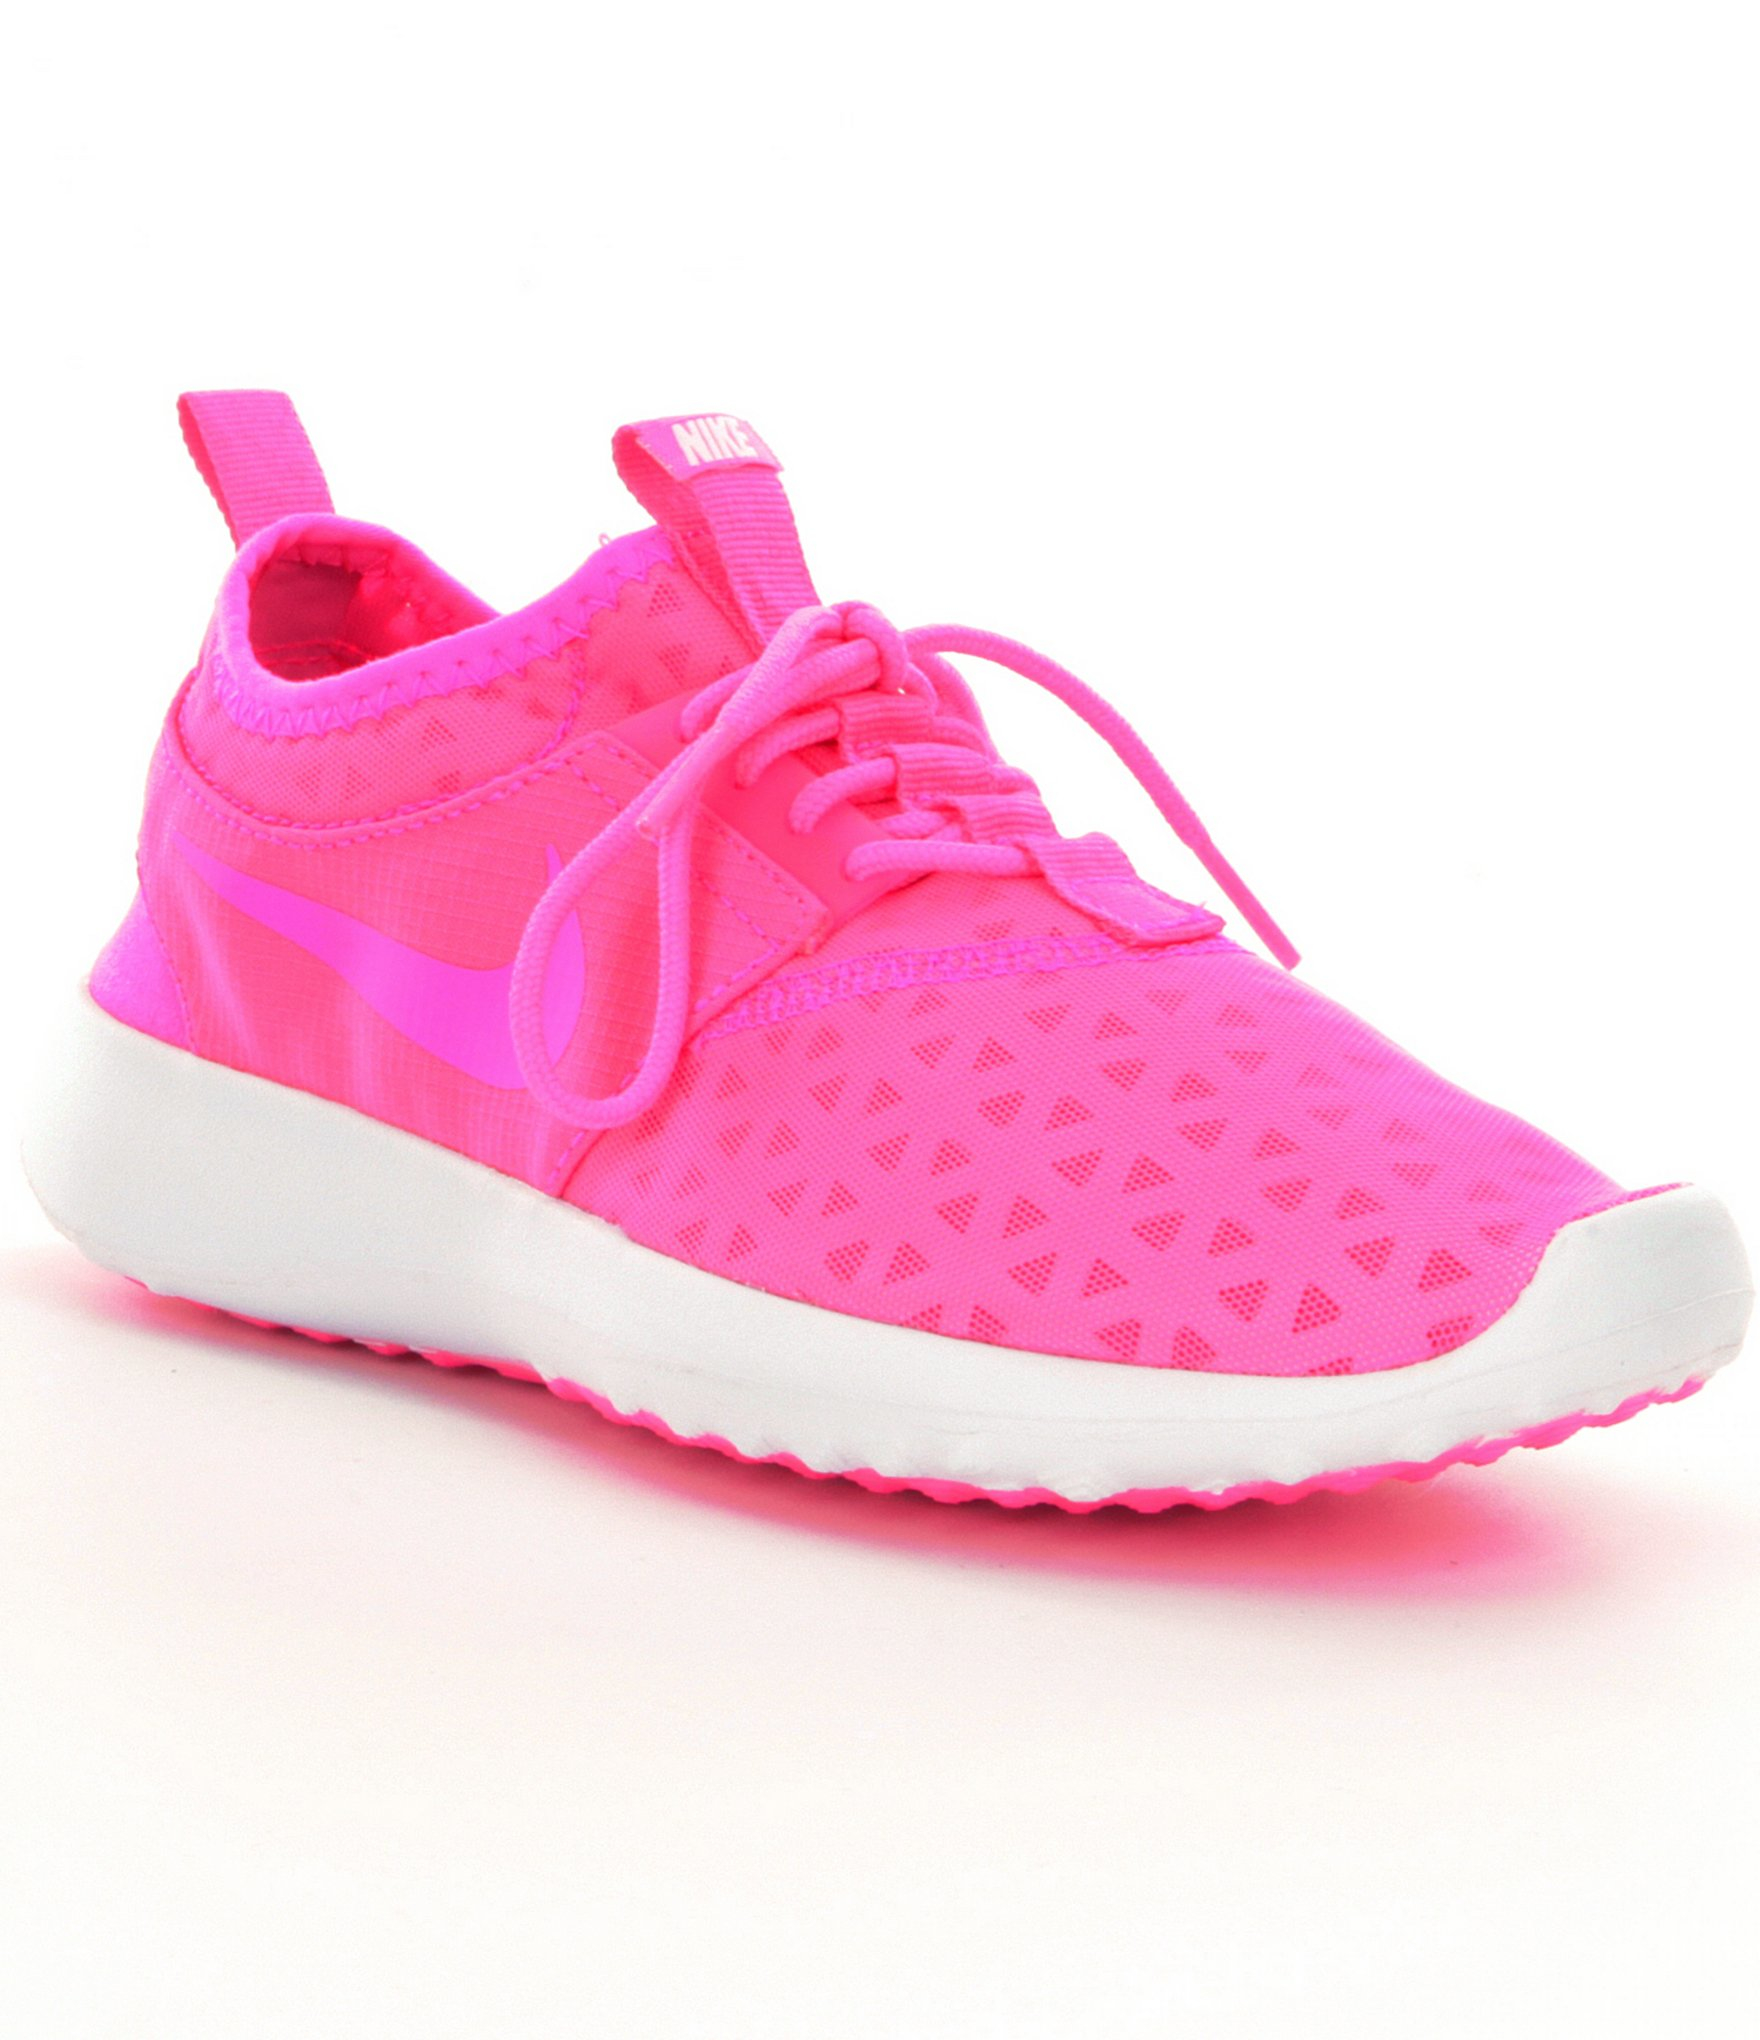 super popular 380ad c3186 Lyst - Nike Juvenate Women´s Lifestyle Shoes in Pink